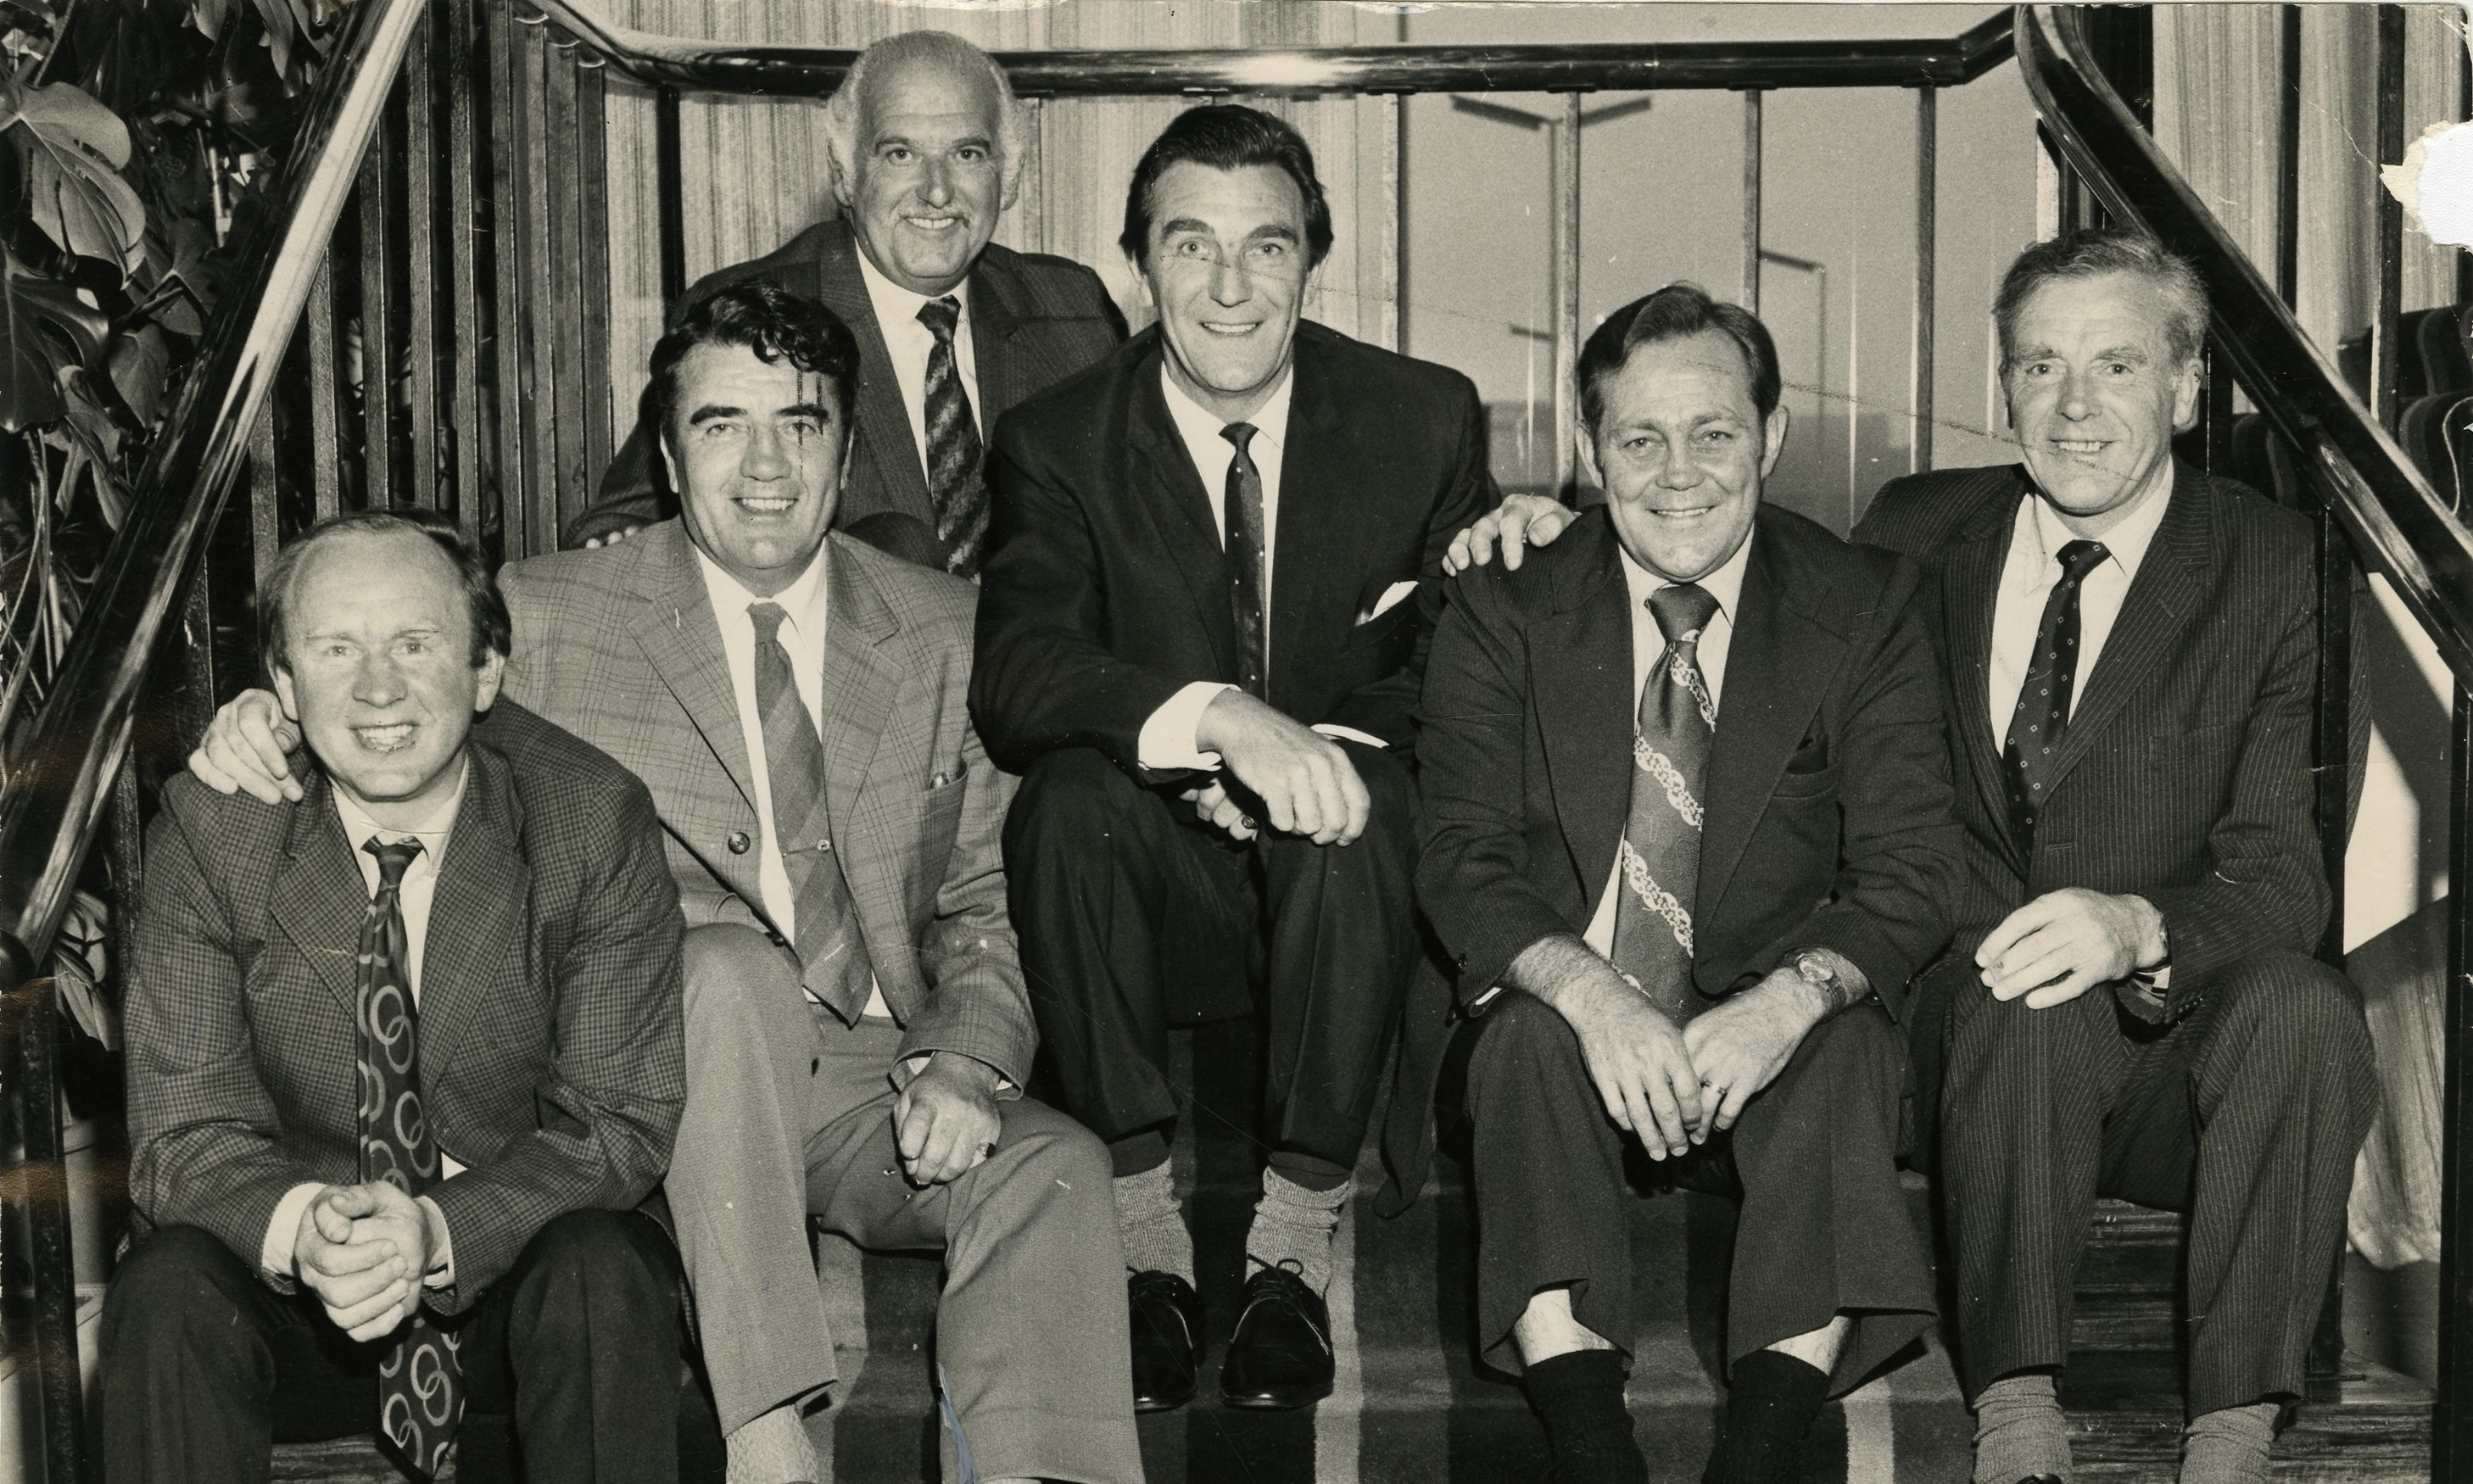 The year is 1973 and Billy Steel is pictured with some of his former Dundee team-mates at a function in the Angus Hotel, Dundee. From left — George Hill, Tommy Gallacher, Cohen (first name unknown), Doug Cowie, Billy Steel and Gerry Follon.